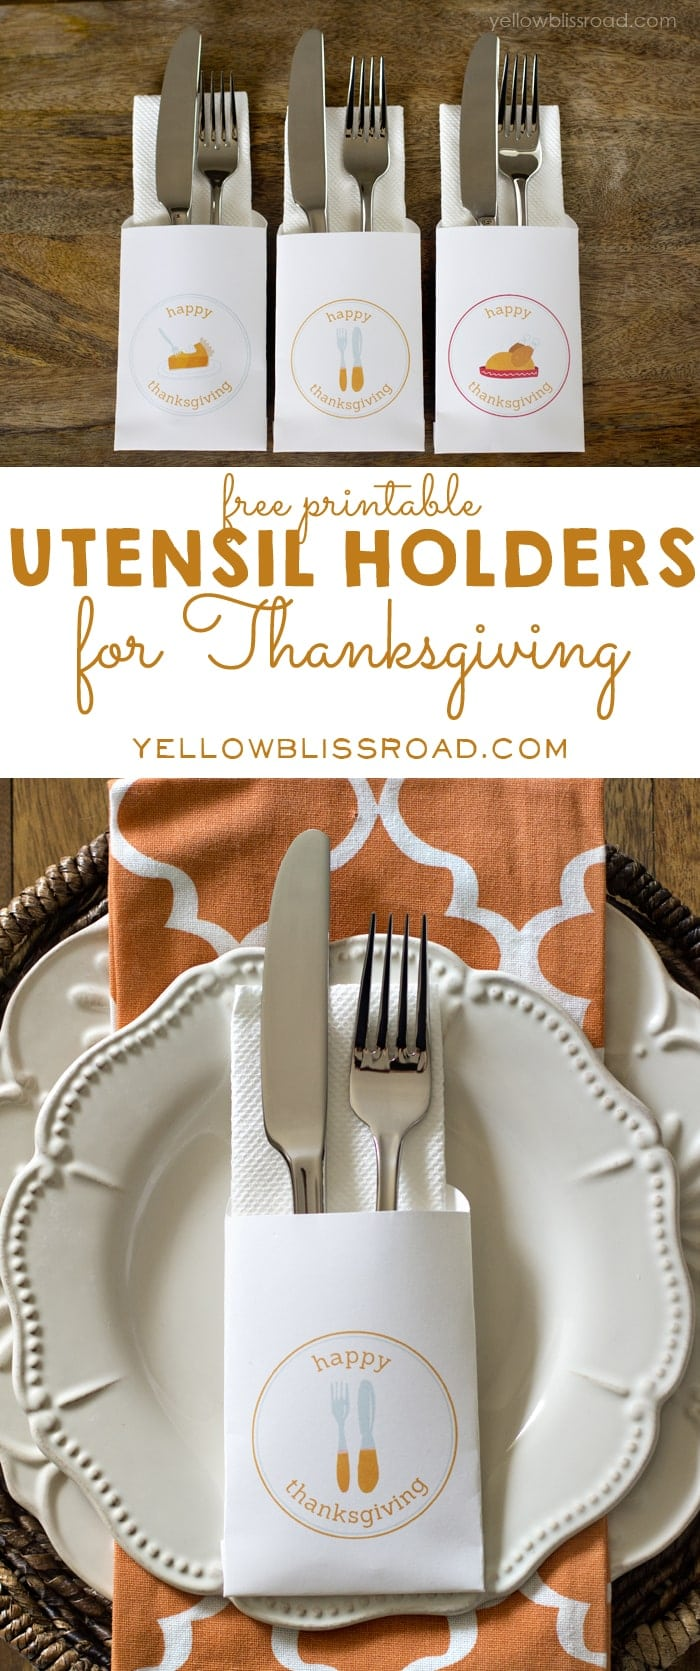 Free Printable Utensil Holders for Thanksgiving